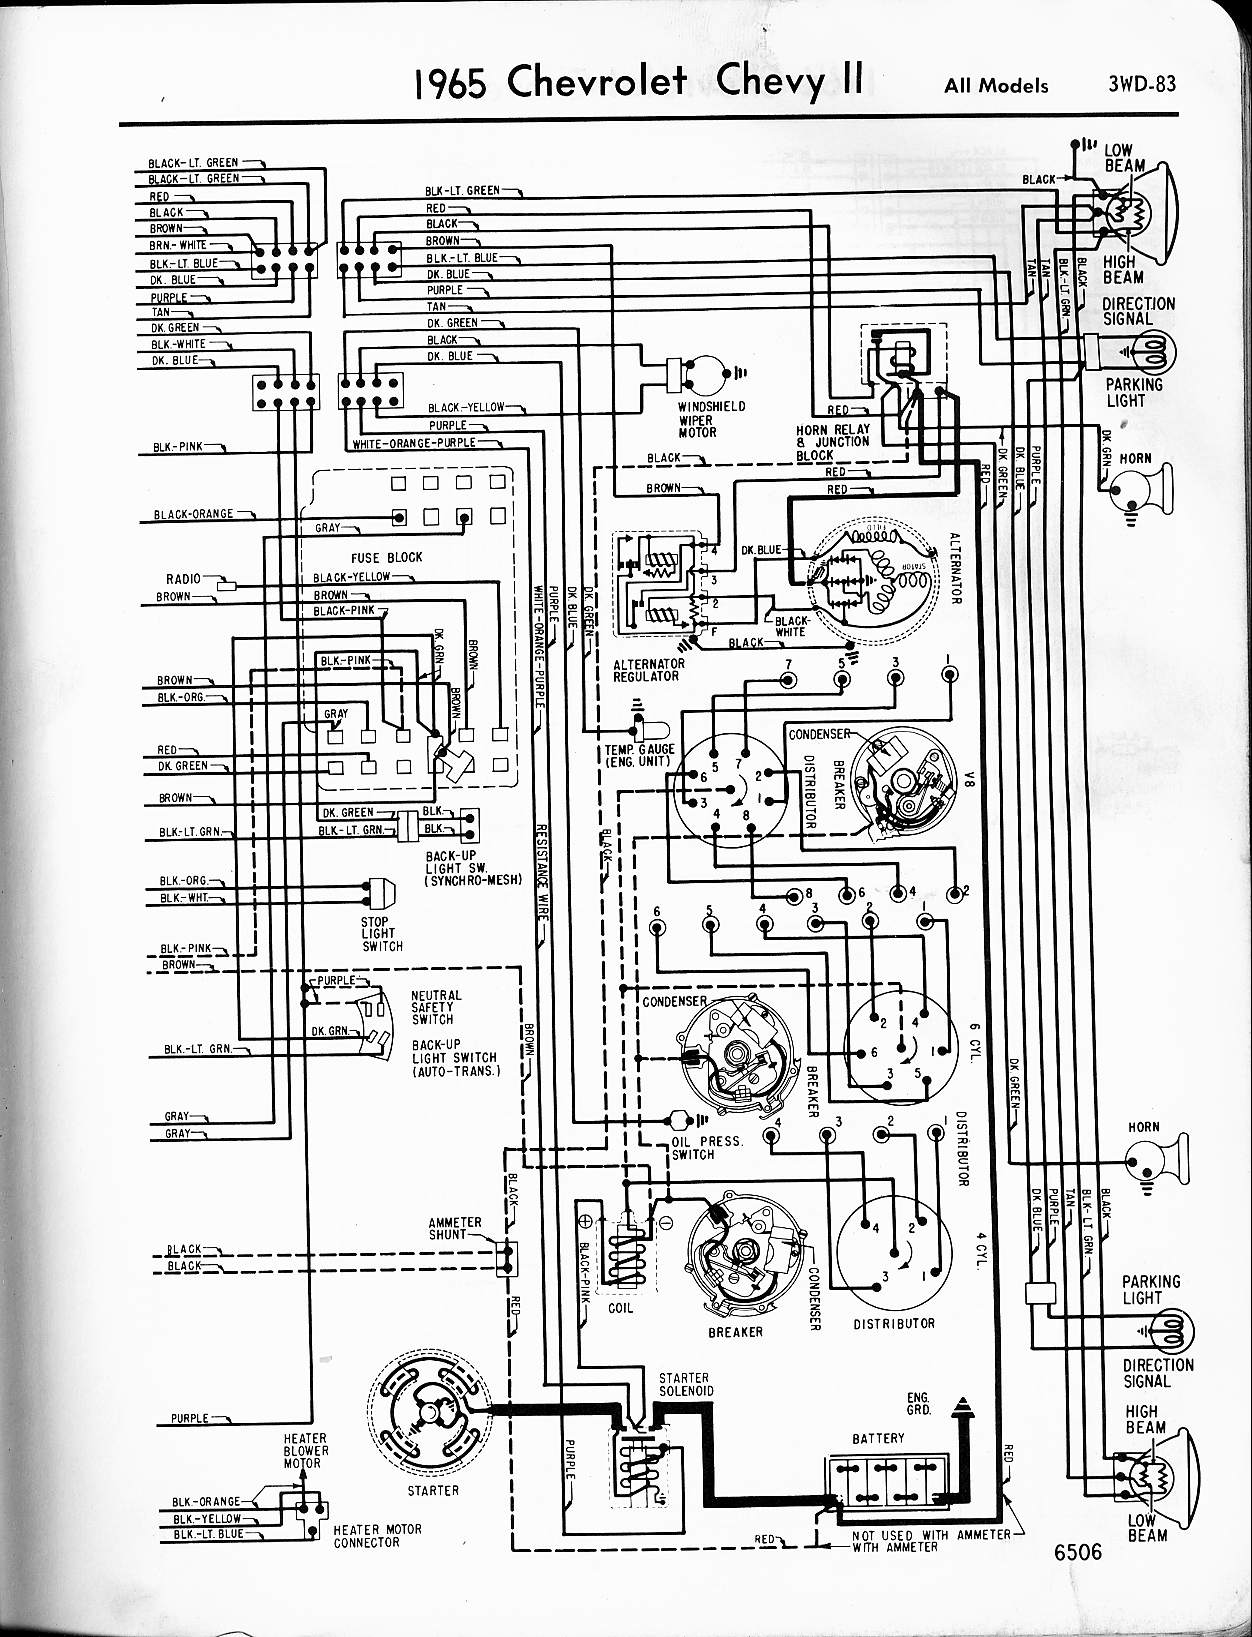 [SCHEMATICS_48ZD]  WRG-3749] 66 C10 Truck Wire Diagram | 1966 Chevy Truck Tail Light Wiring Diagram |  | Wiring Resources